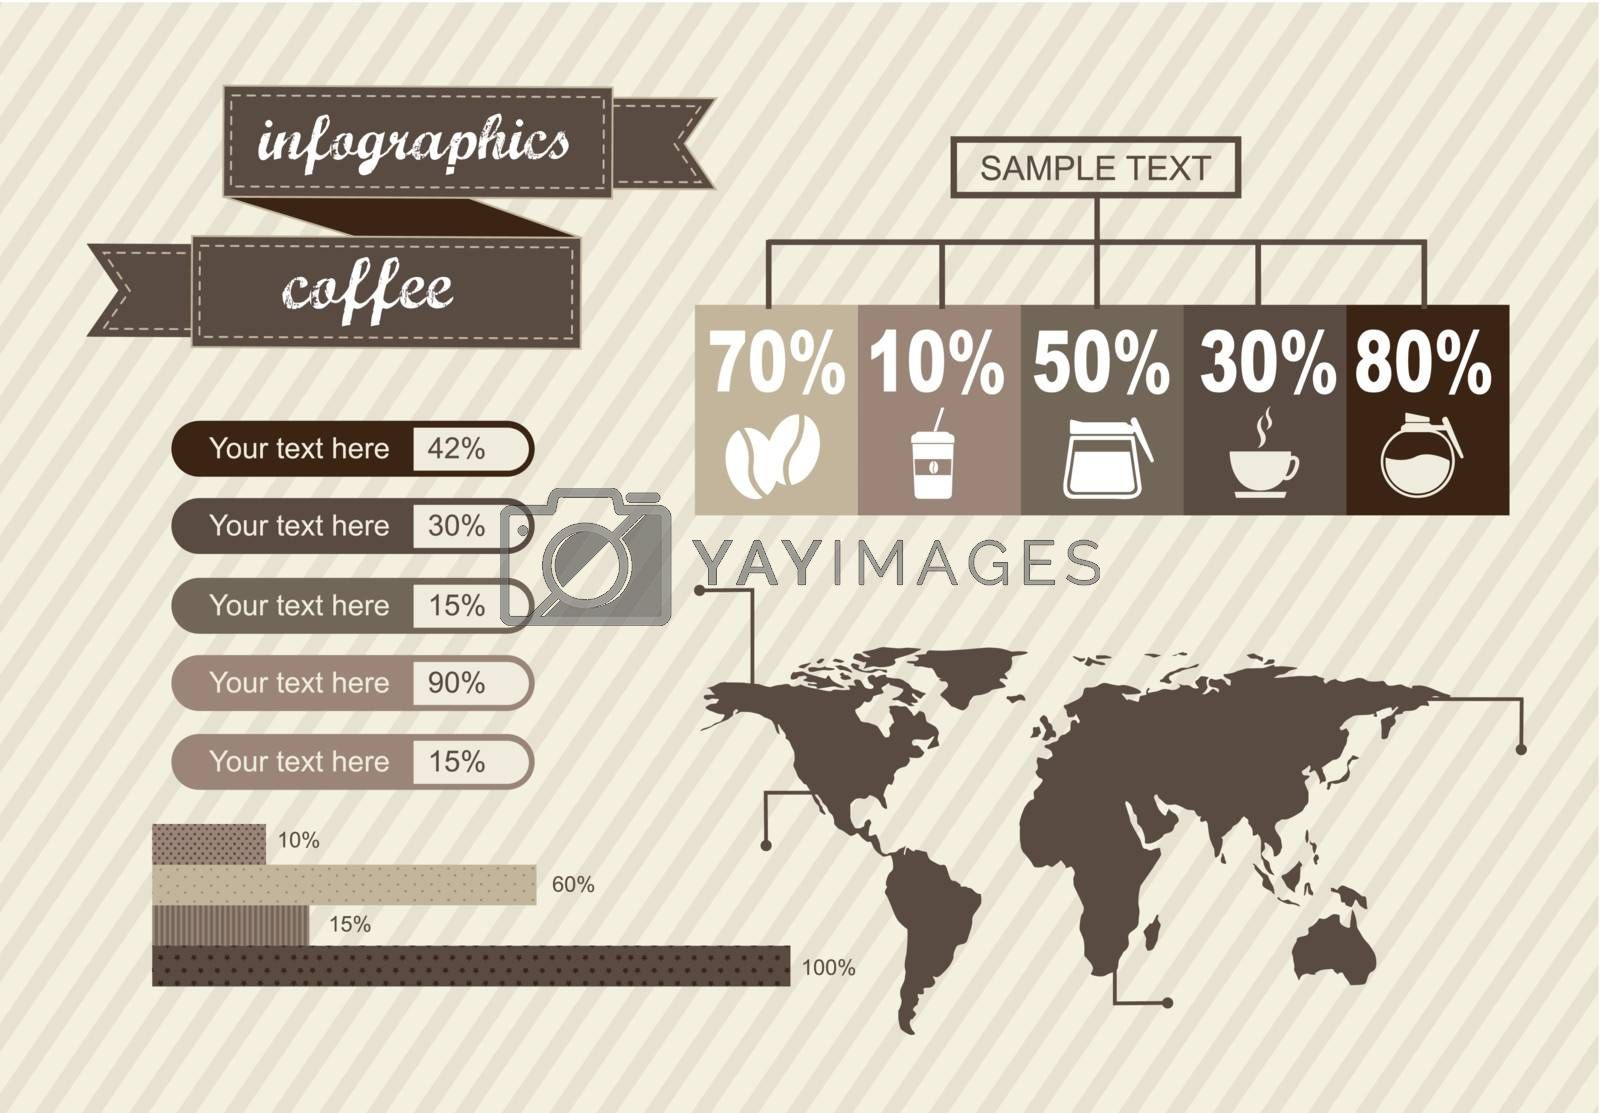 infographics of coffee, vintage style. vector illustration